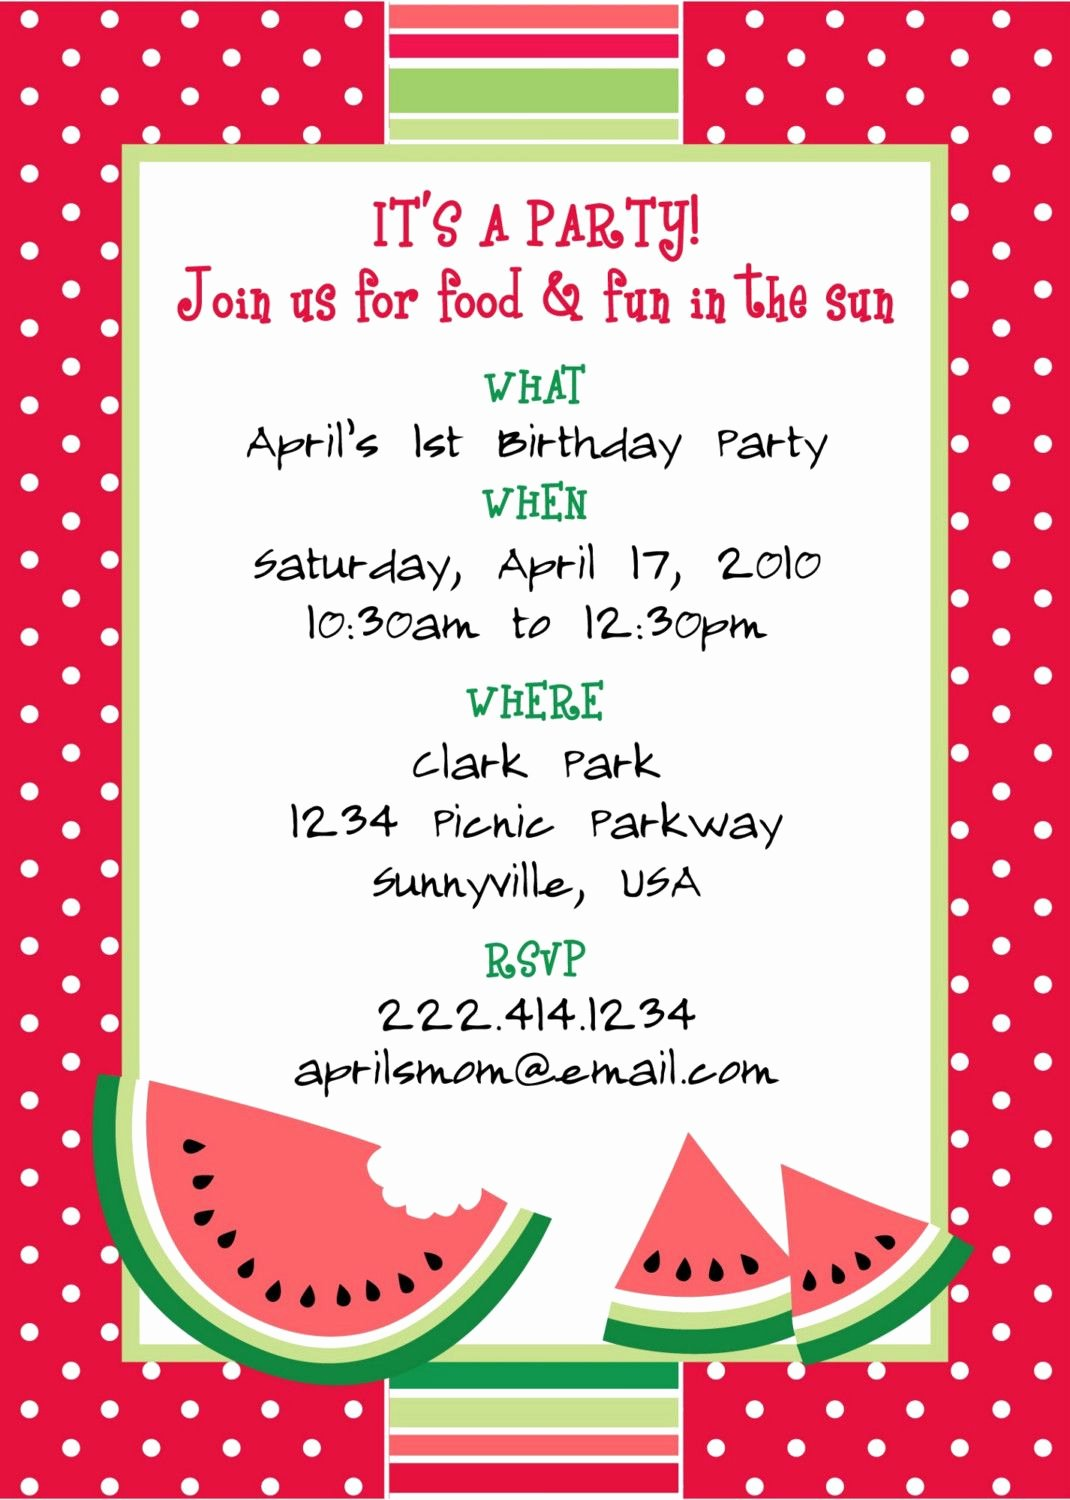 Reception Invitation Template Free Inspirational Picnic Invitations Pdf Invitation Templates